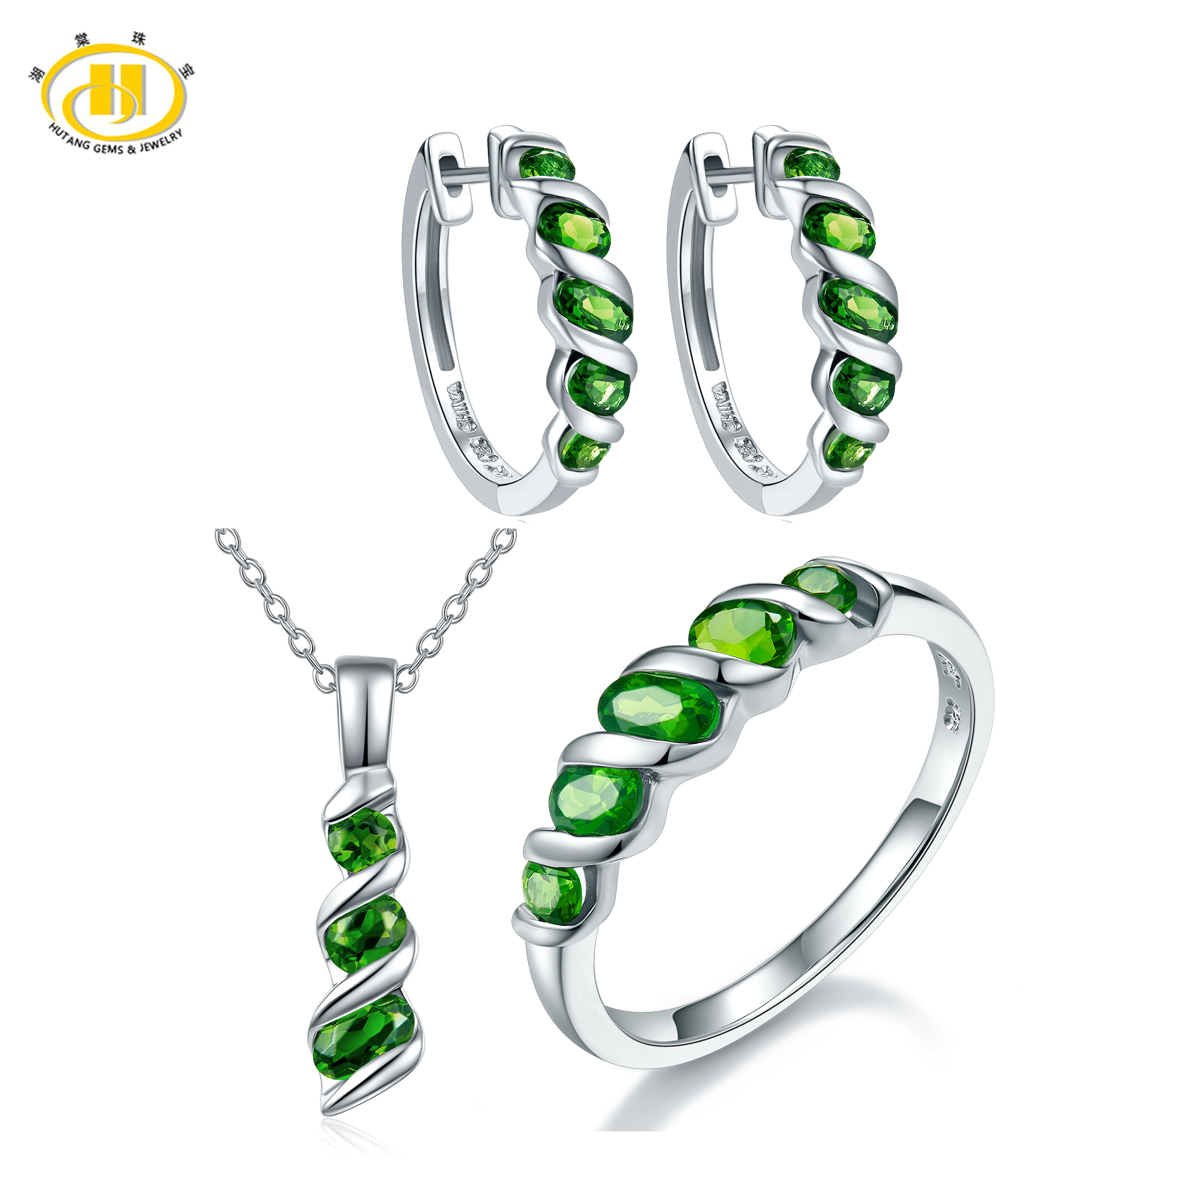 Hutang Classic Russian Chrome Diopside Jewelry Sets for Women Solid 925 Sterling Silver Gemstone Jewelry Pendant Earrings RingHutang Classic Russian Chrome Diopside Jewelry Sets for Women Solid 925 Sterling Silver Gemstone Jewelry Pendant Earrings Ring